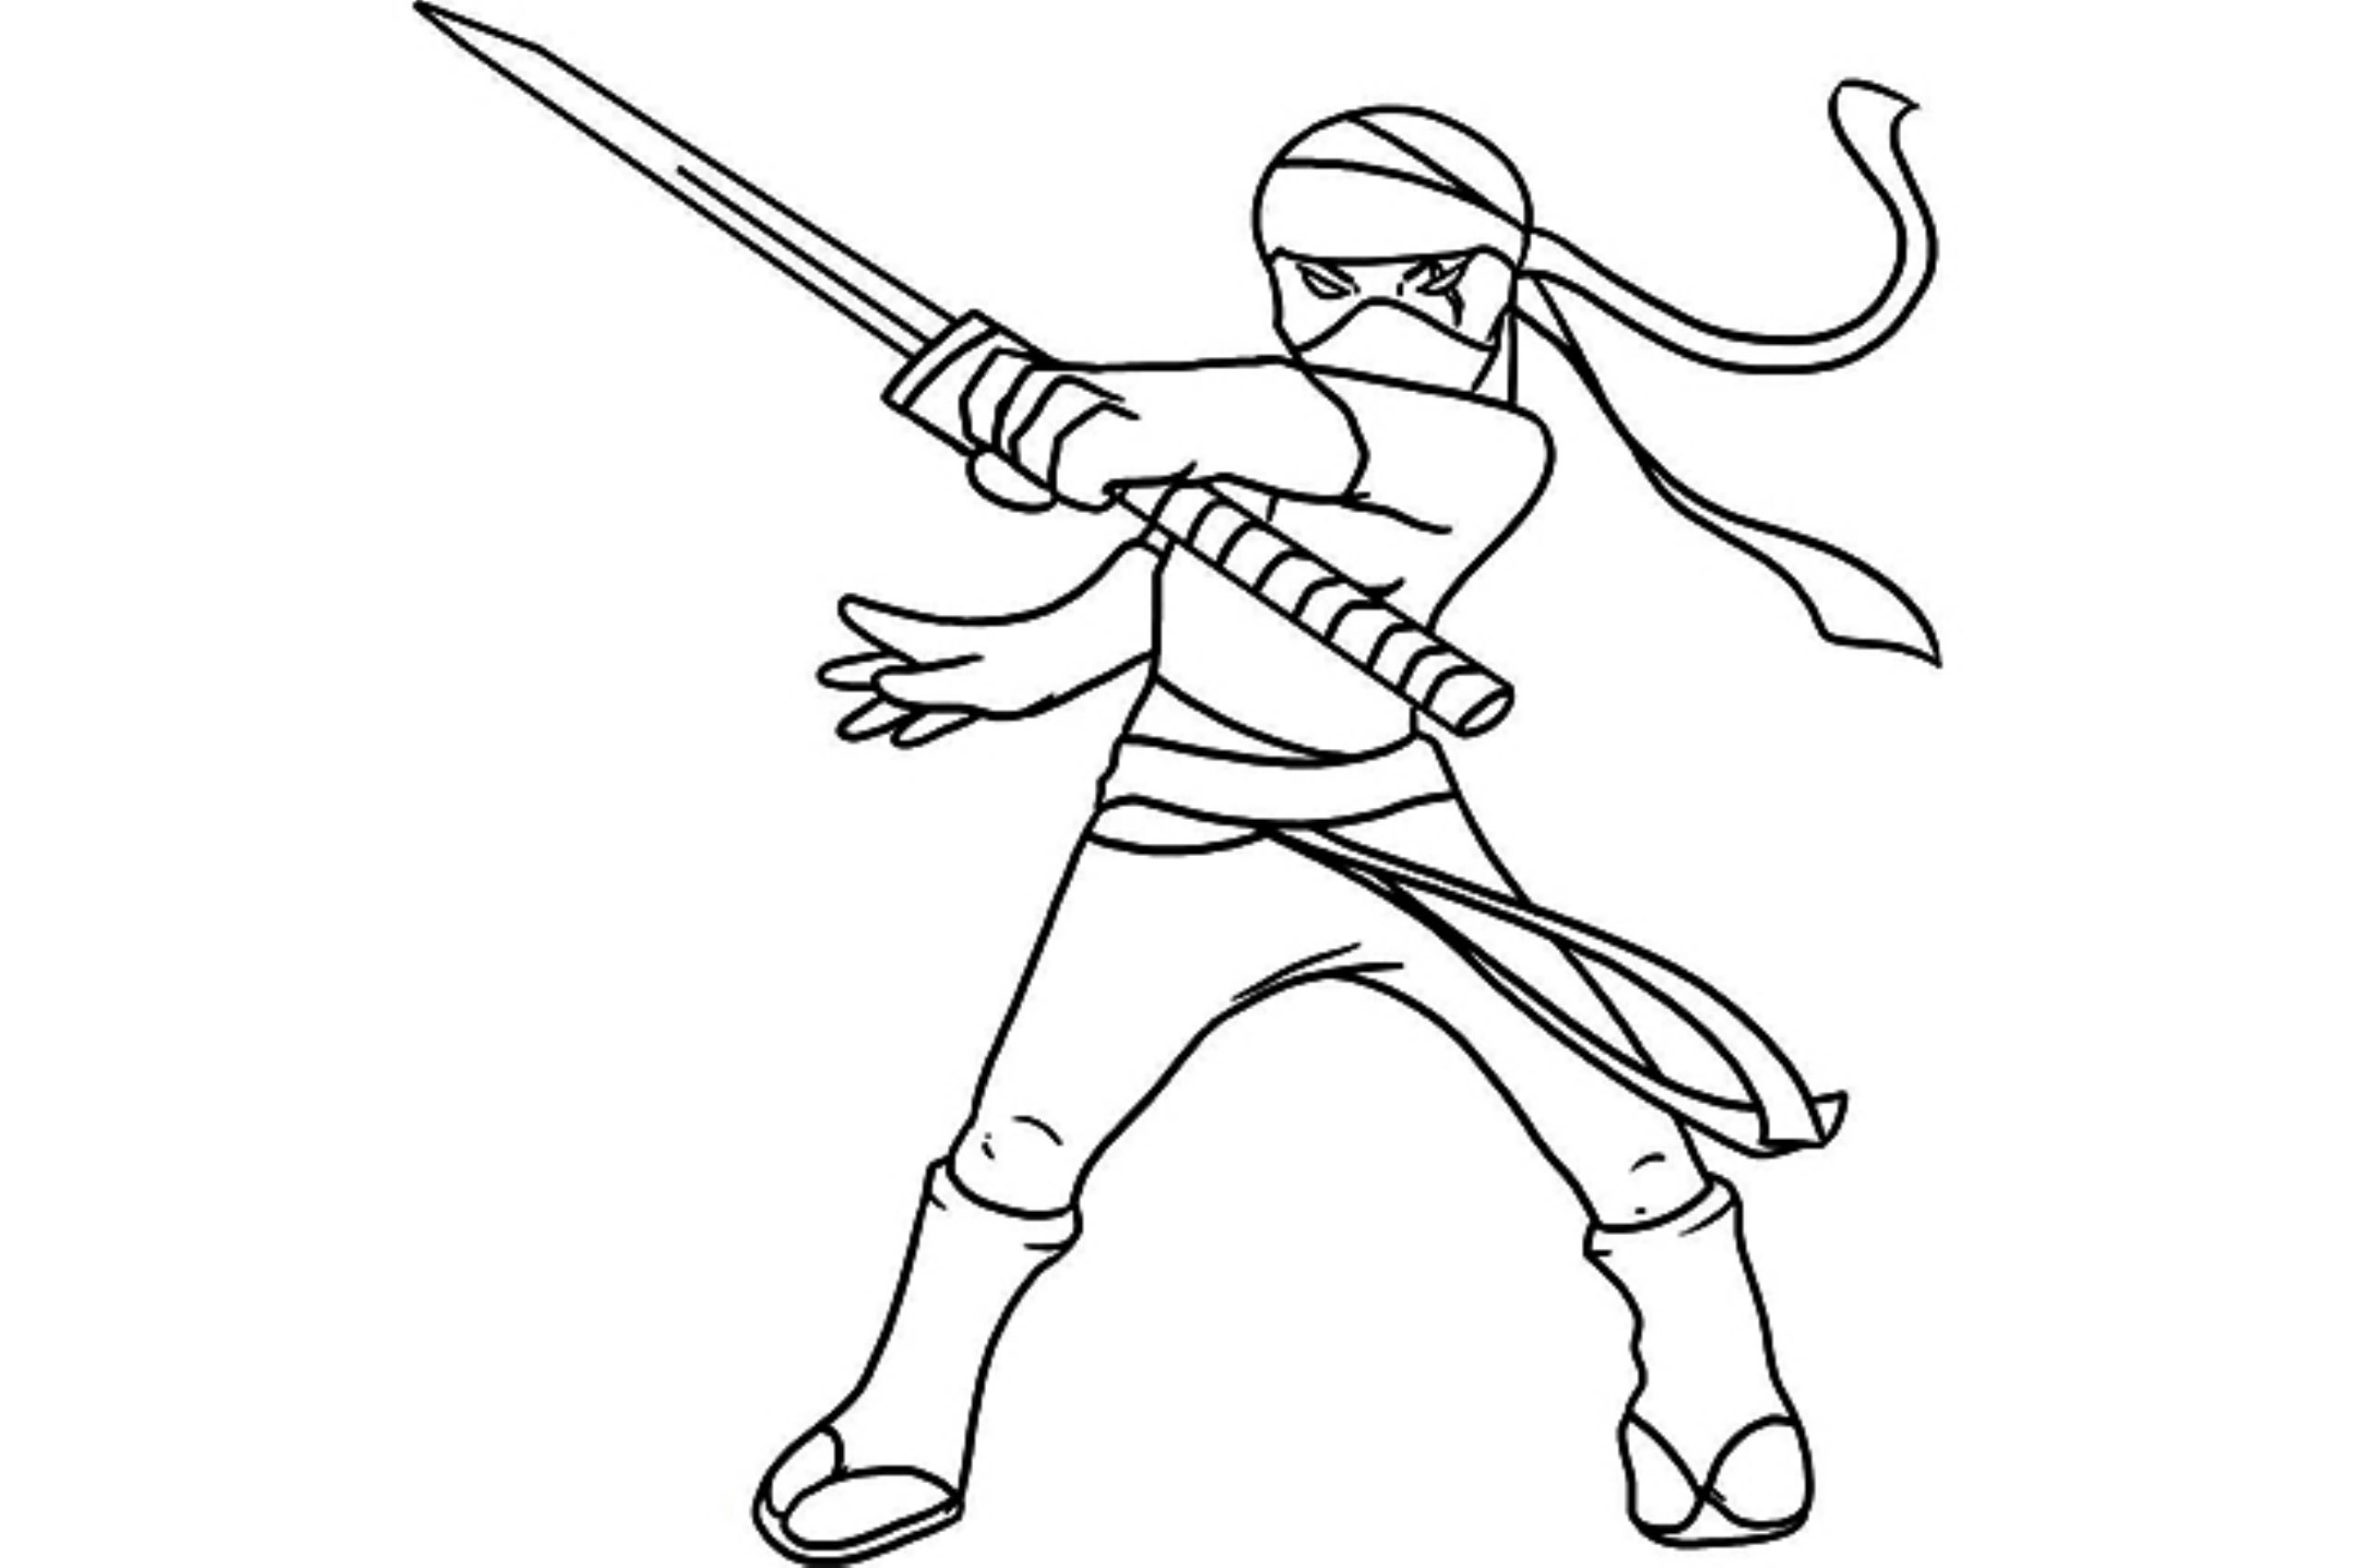 Spotlight Ninja Coloring Pages For Adults